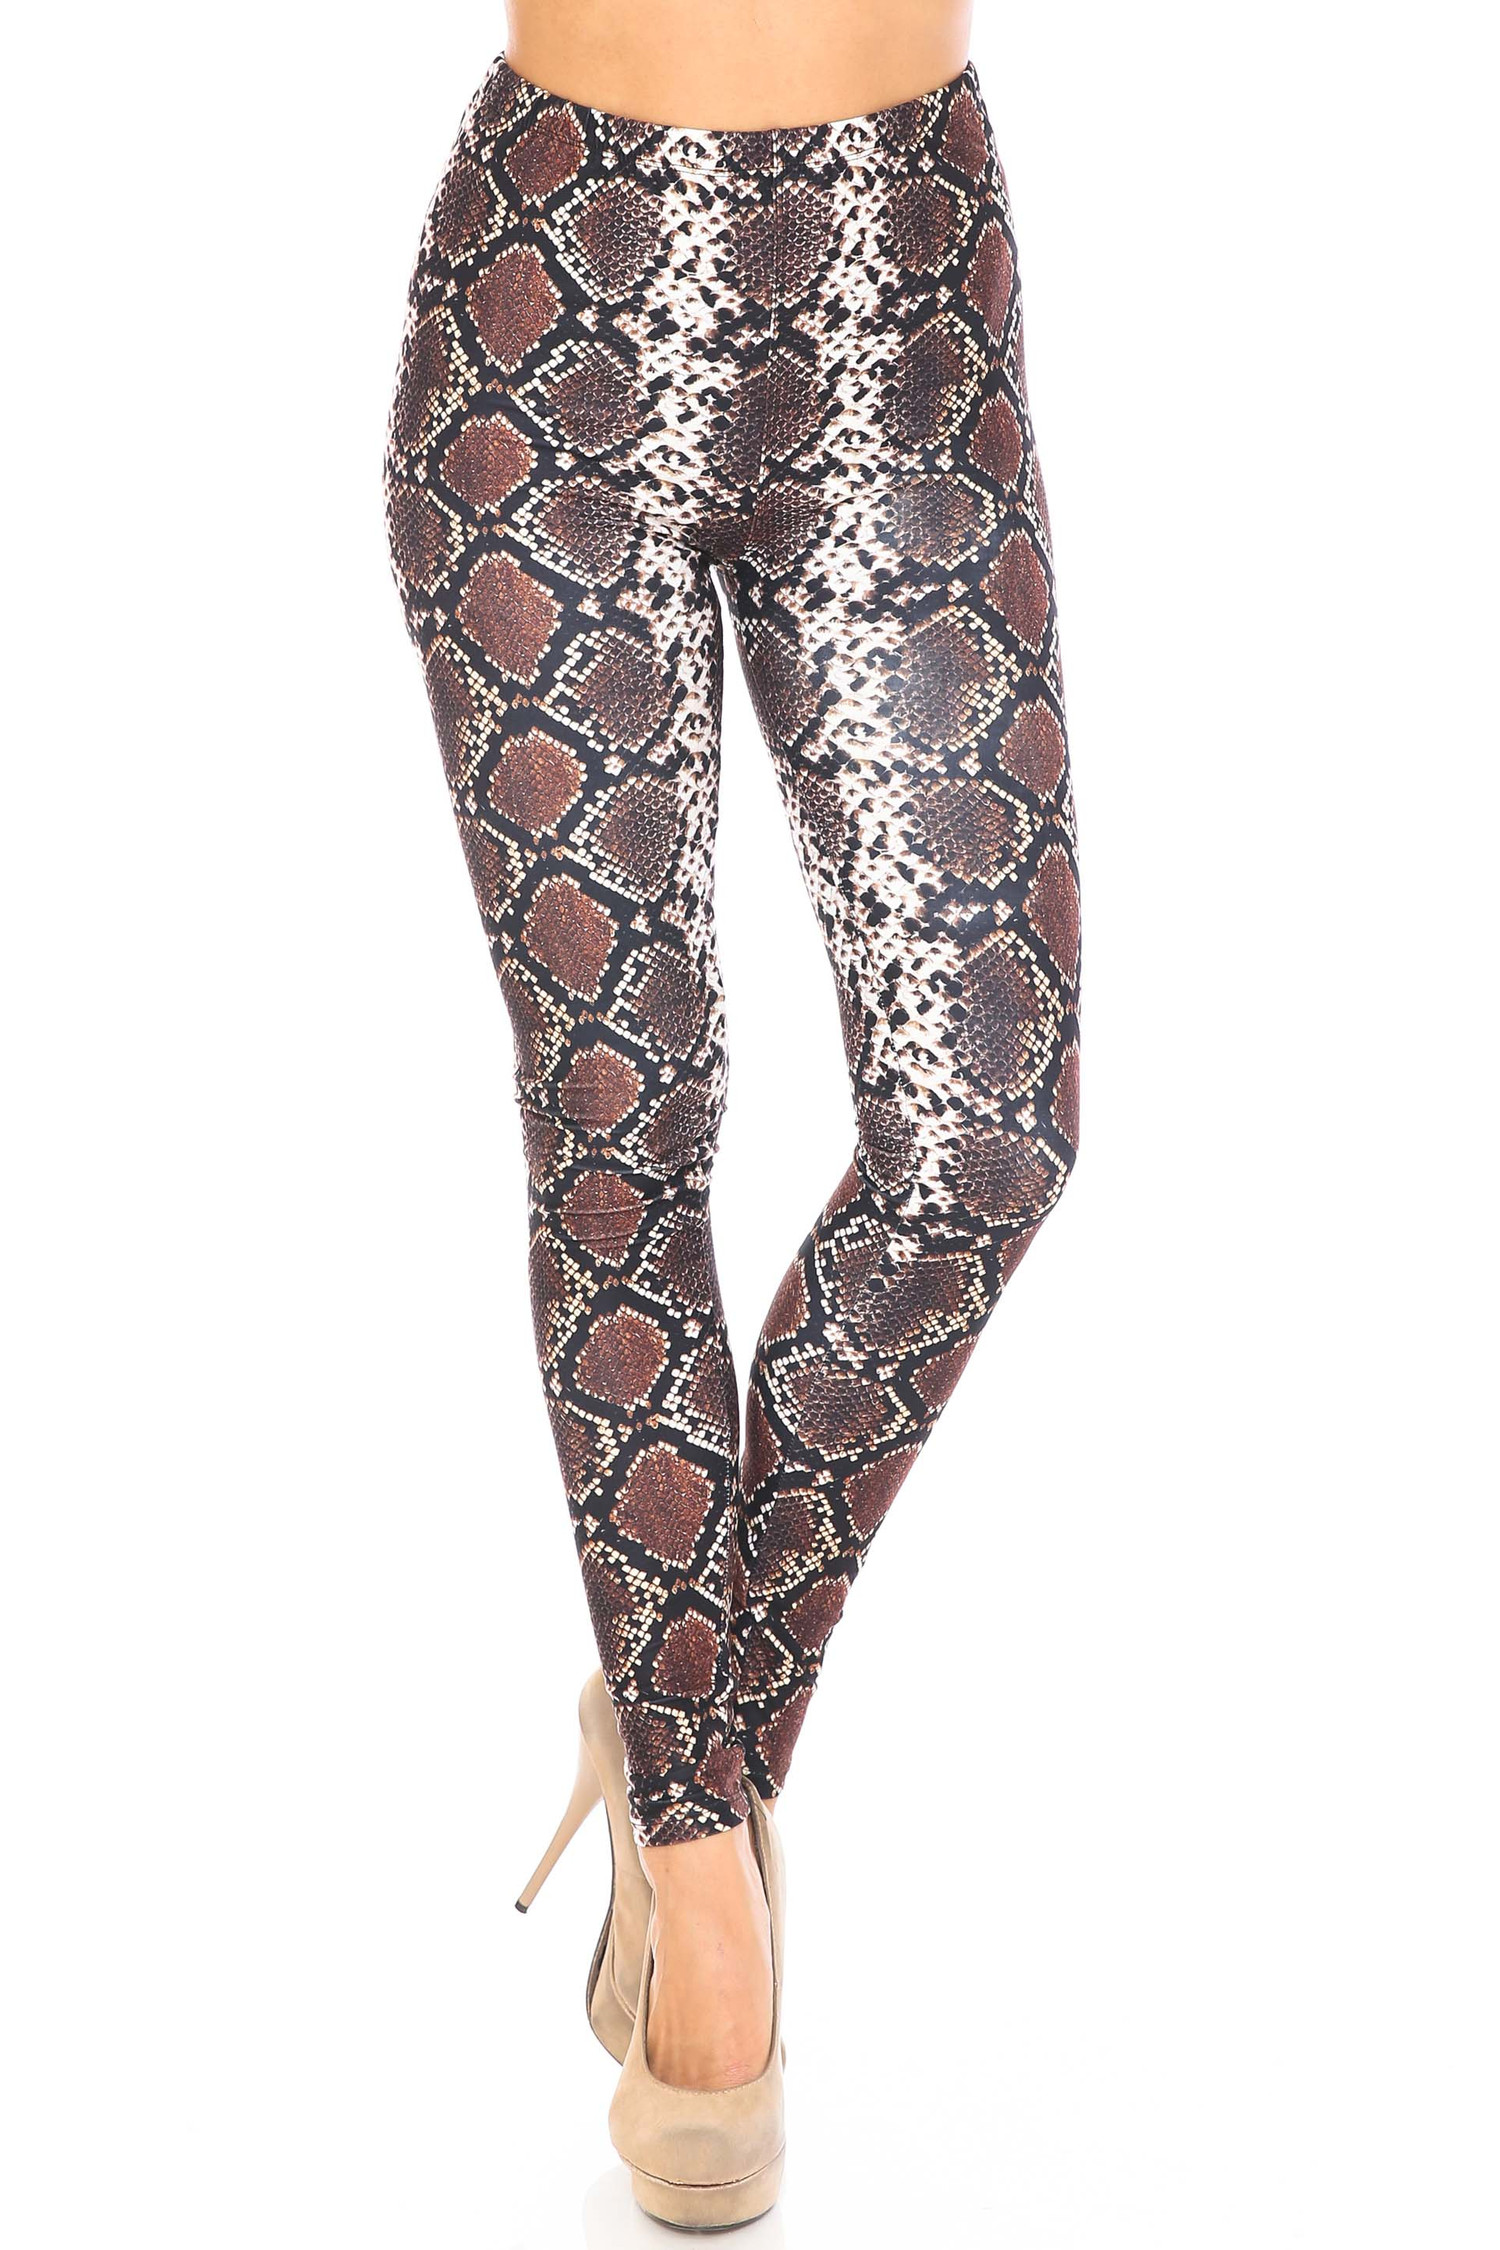 Front side image of Creamy Soft Brown Boa Extra Plus Size Leggings - 3X-5X - USA Fashion™